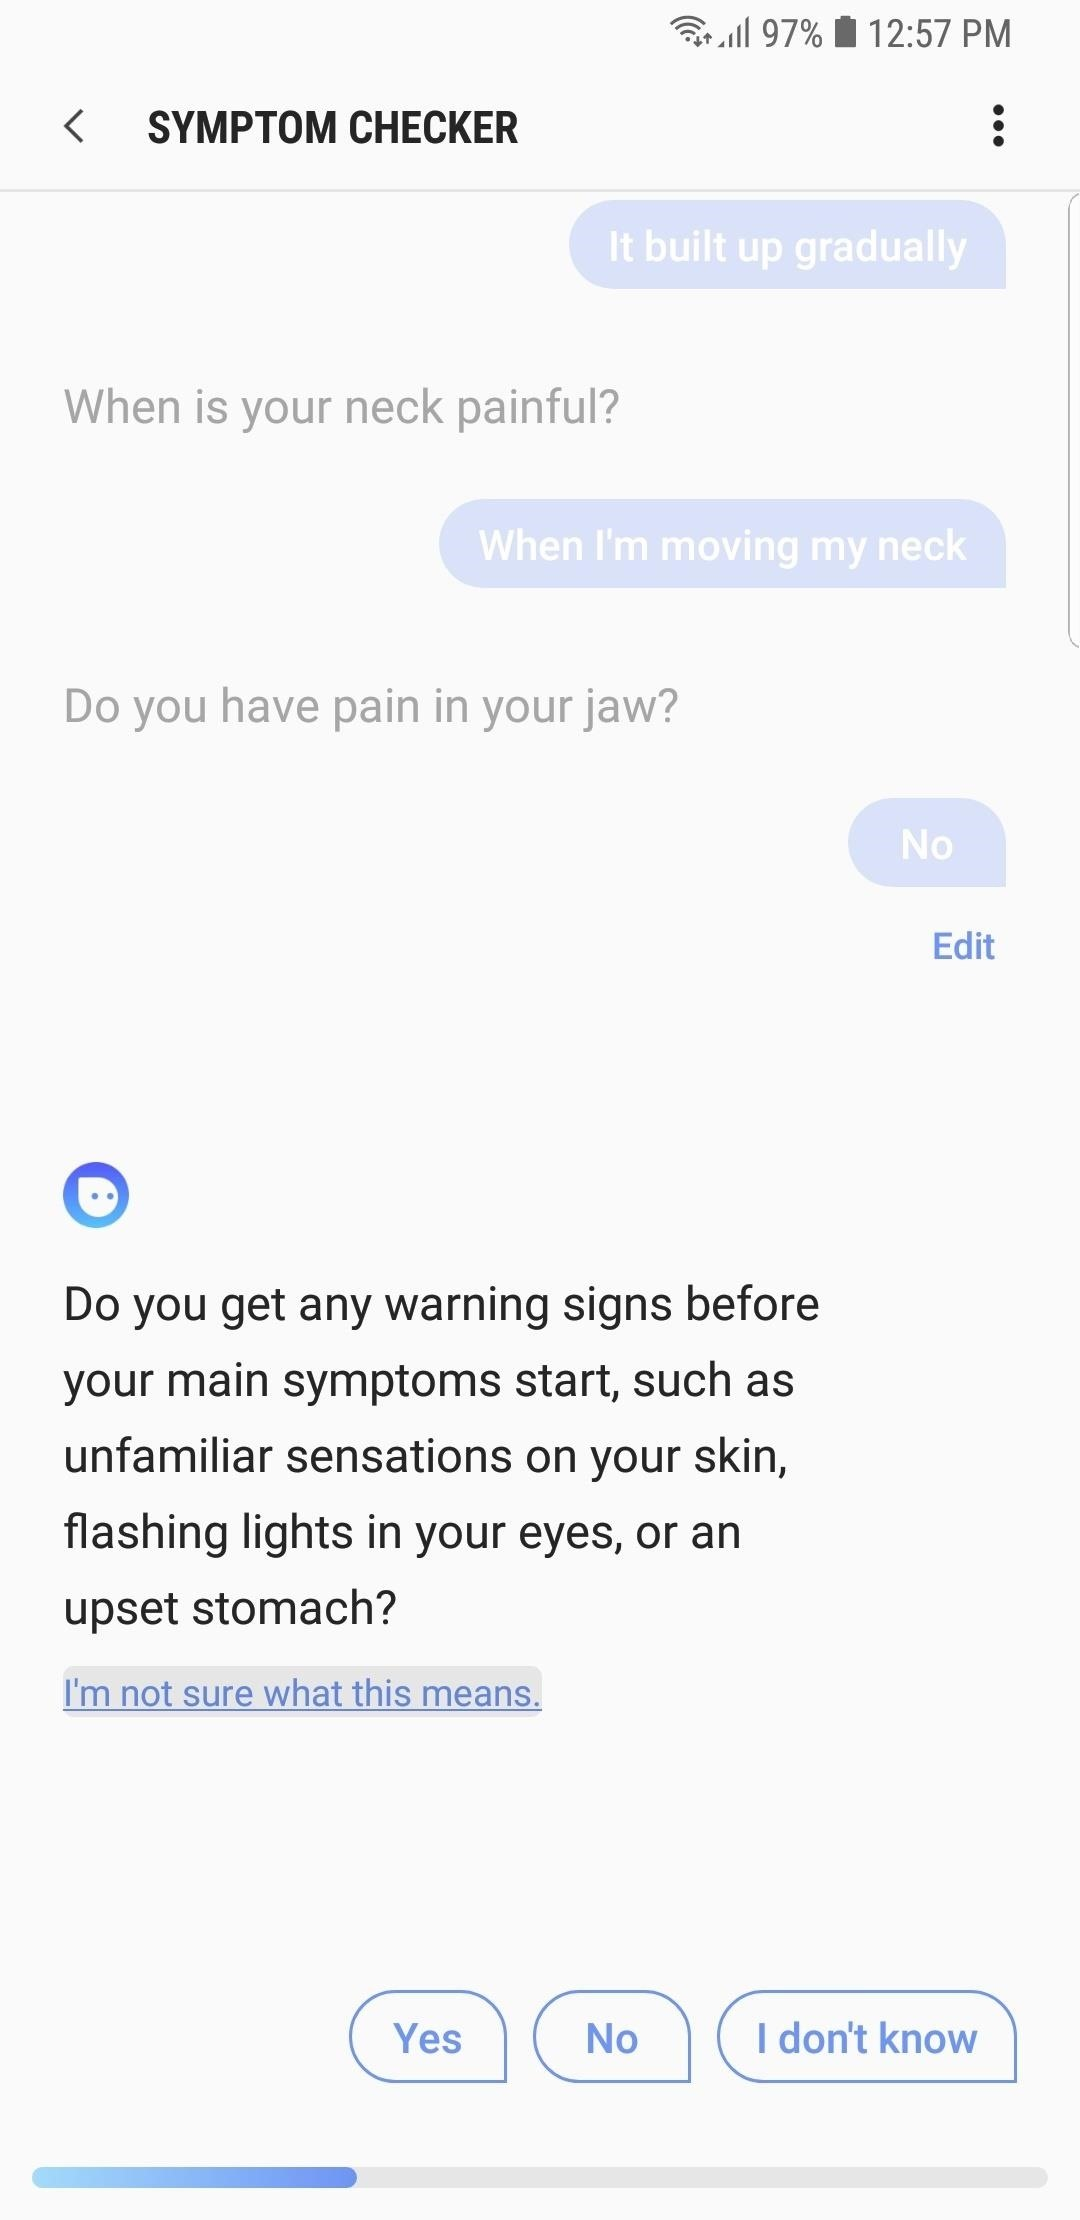 How to Use Samsung Health to Diagnose Symptoms from the Privacy of Your Phone